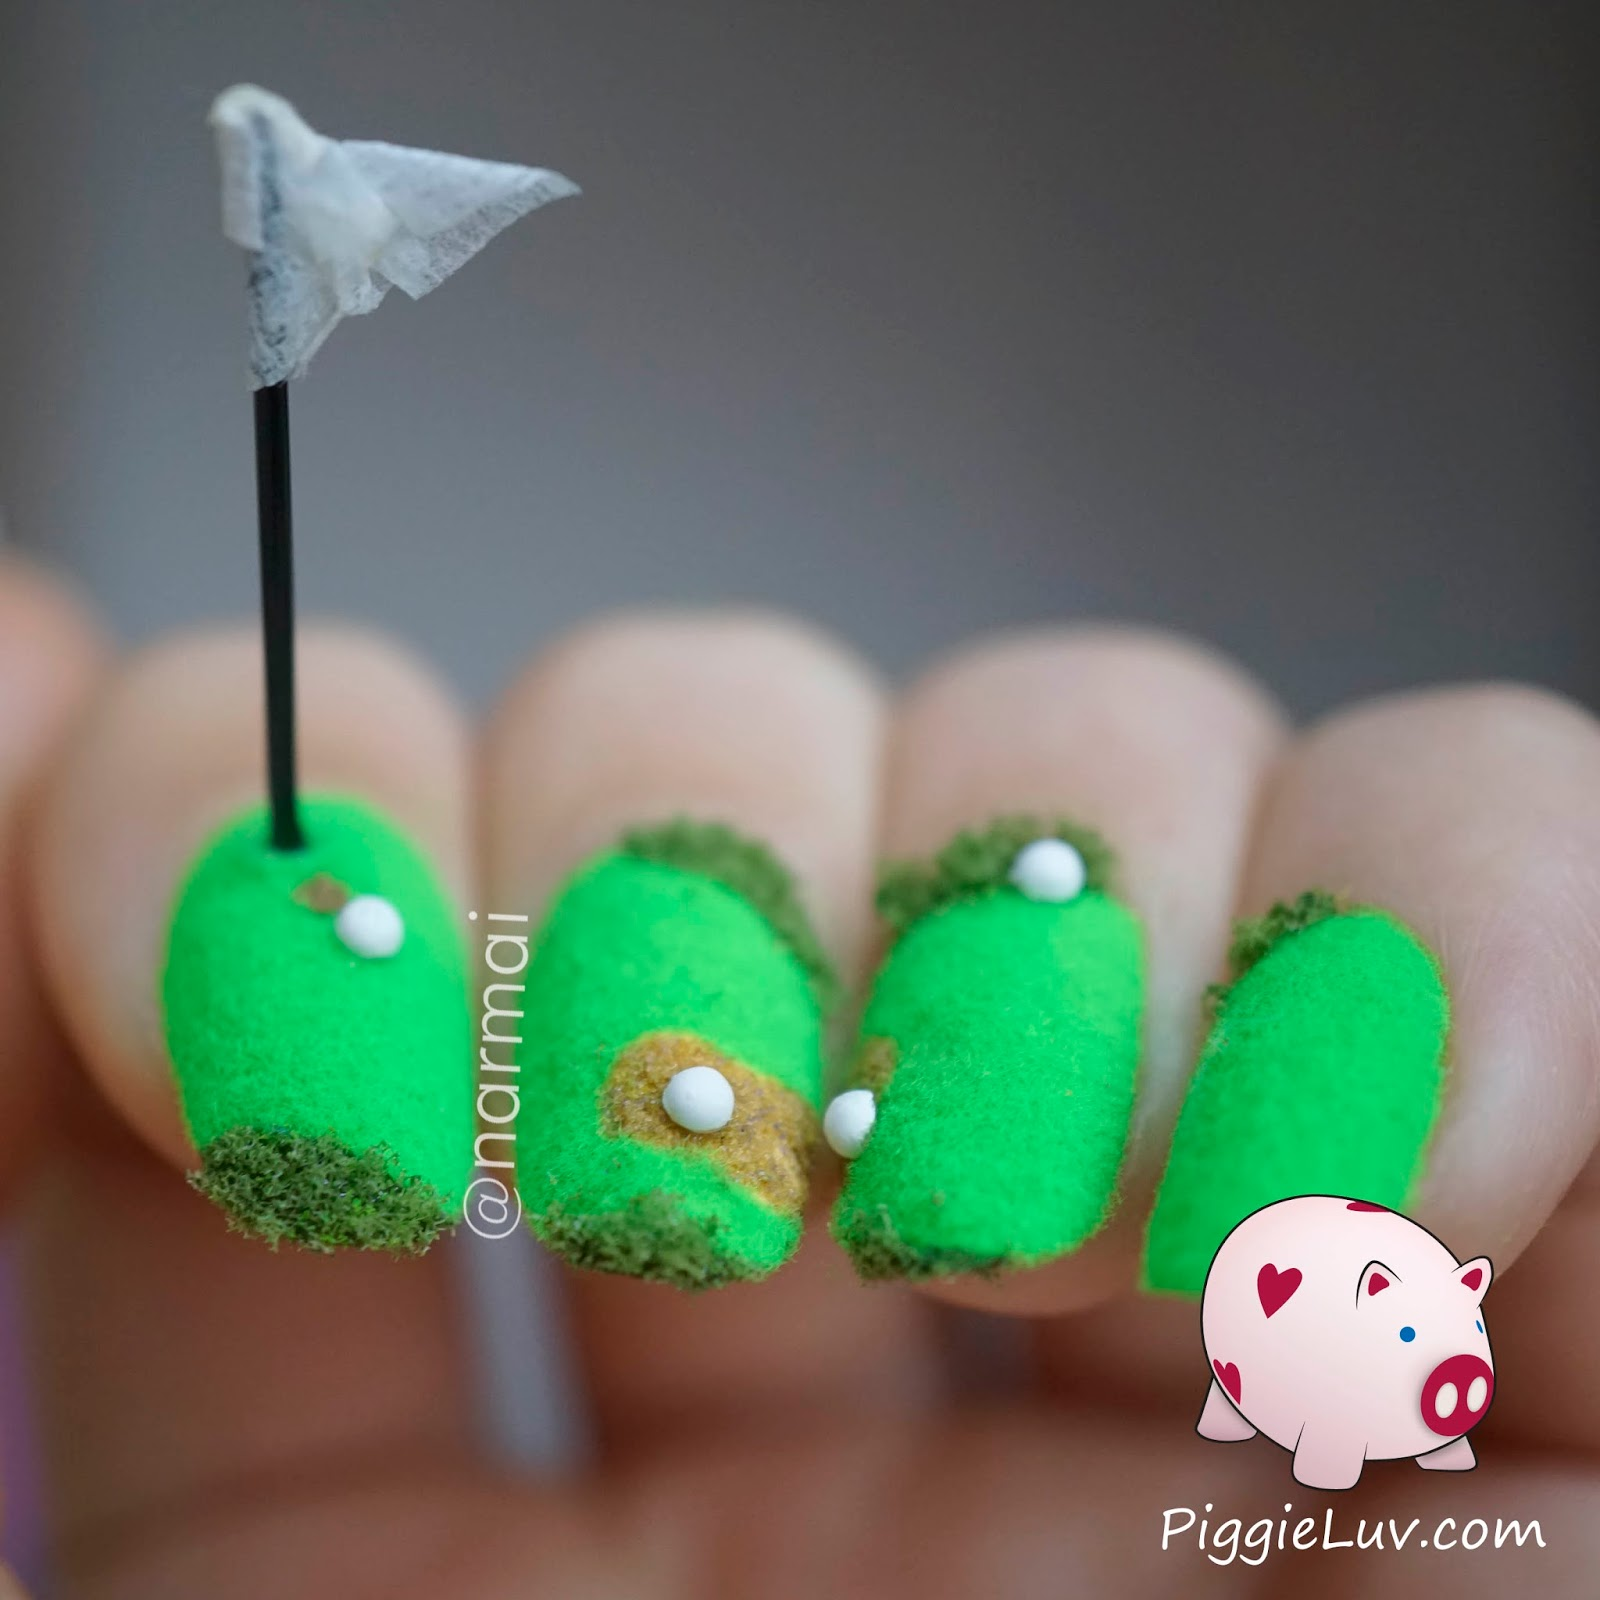 Heyyy It S Time For Some Crazy Stuff Again This Is A Golf Course Nail Art Design And What Better Way To Do Than With Something Sharp Sticking Up From